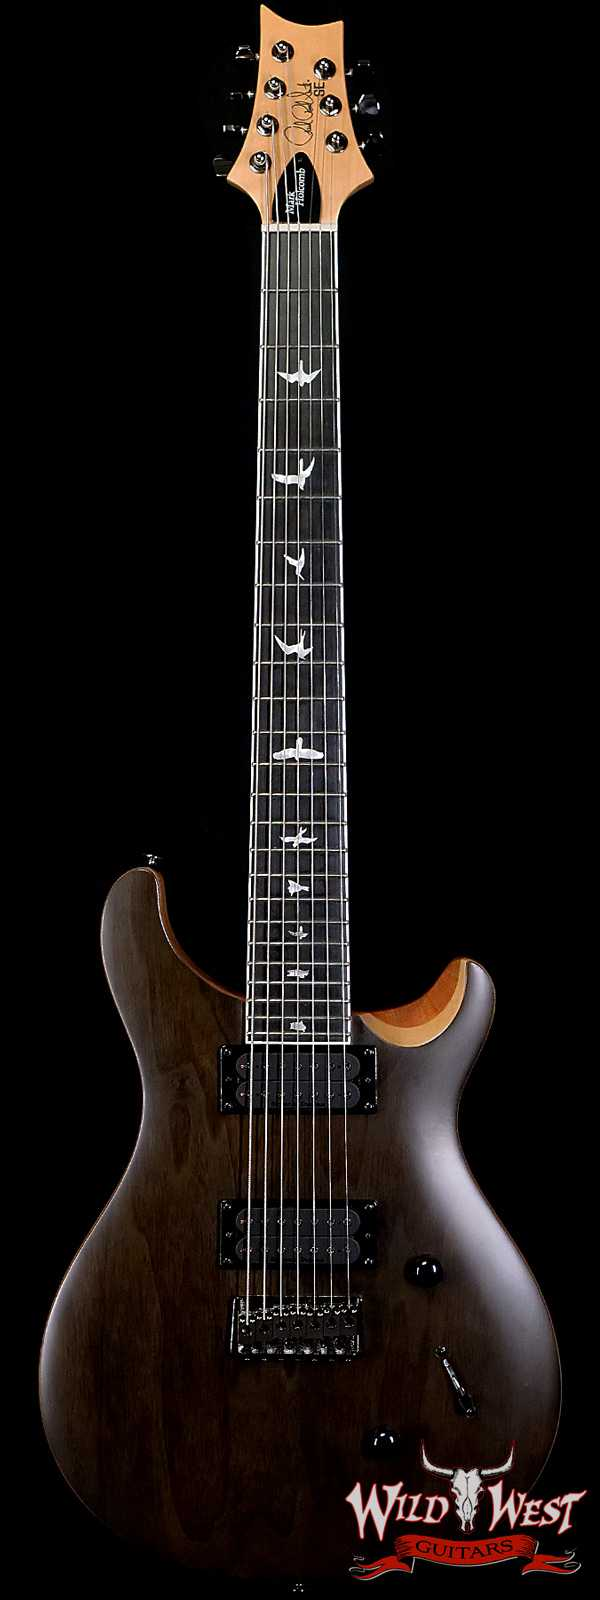 Paul Reed Smith PRS SE Mark Holcomb SVN Signature 7-String Guitar Natural Satin (Walnut Veneer)